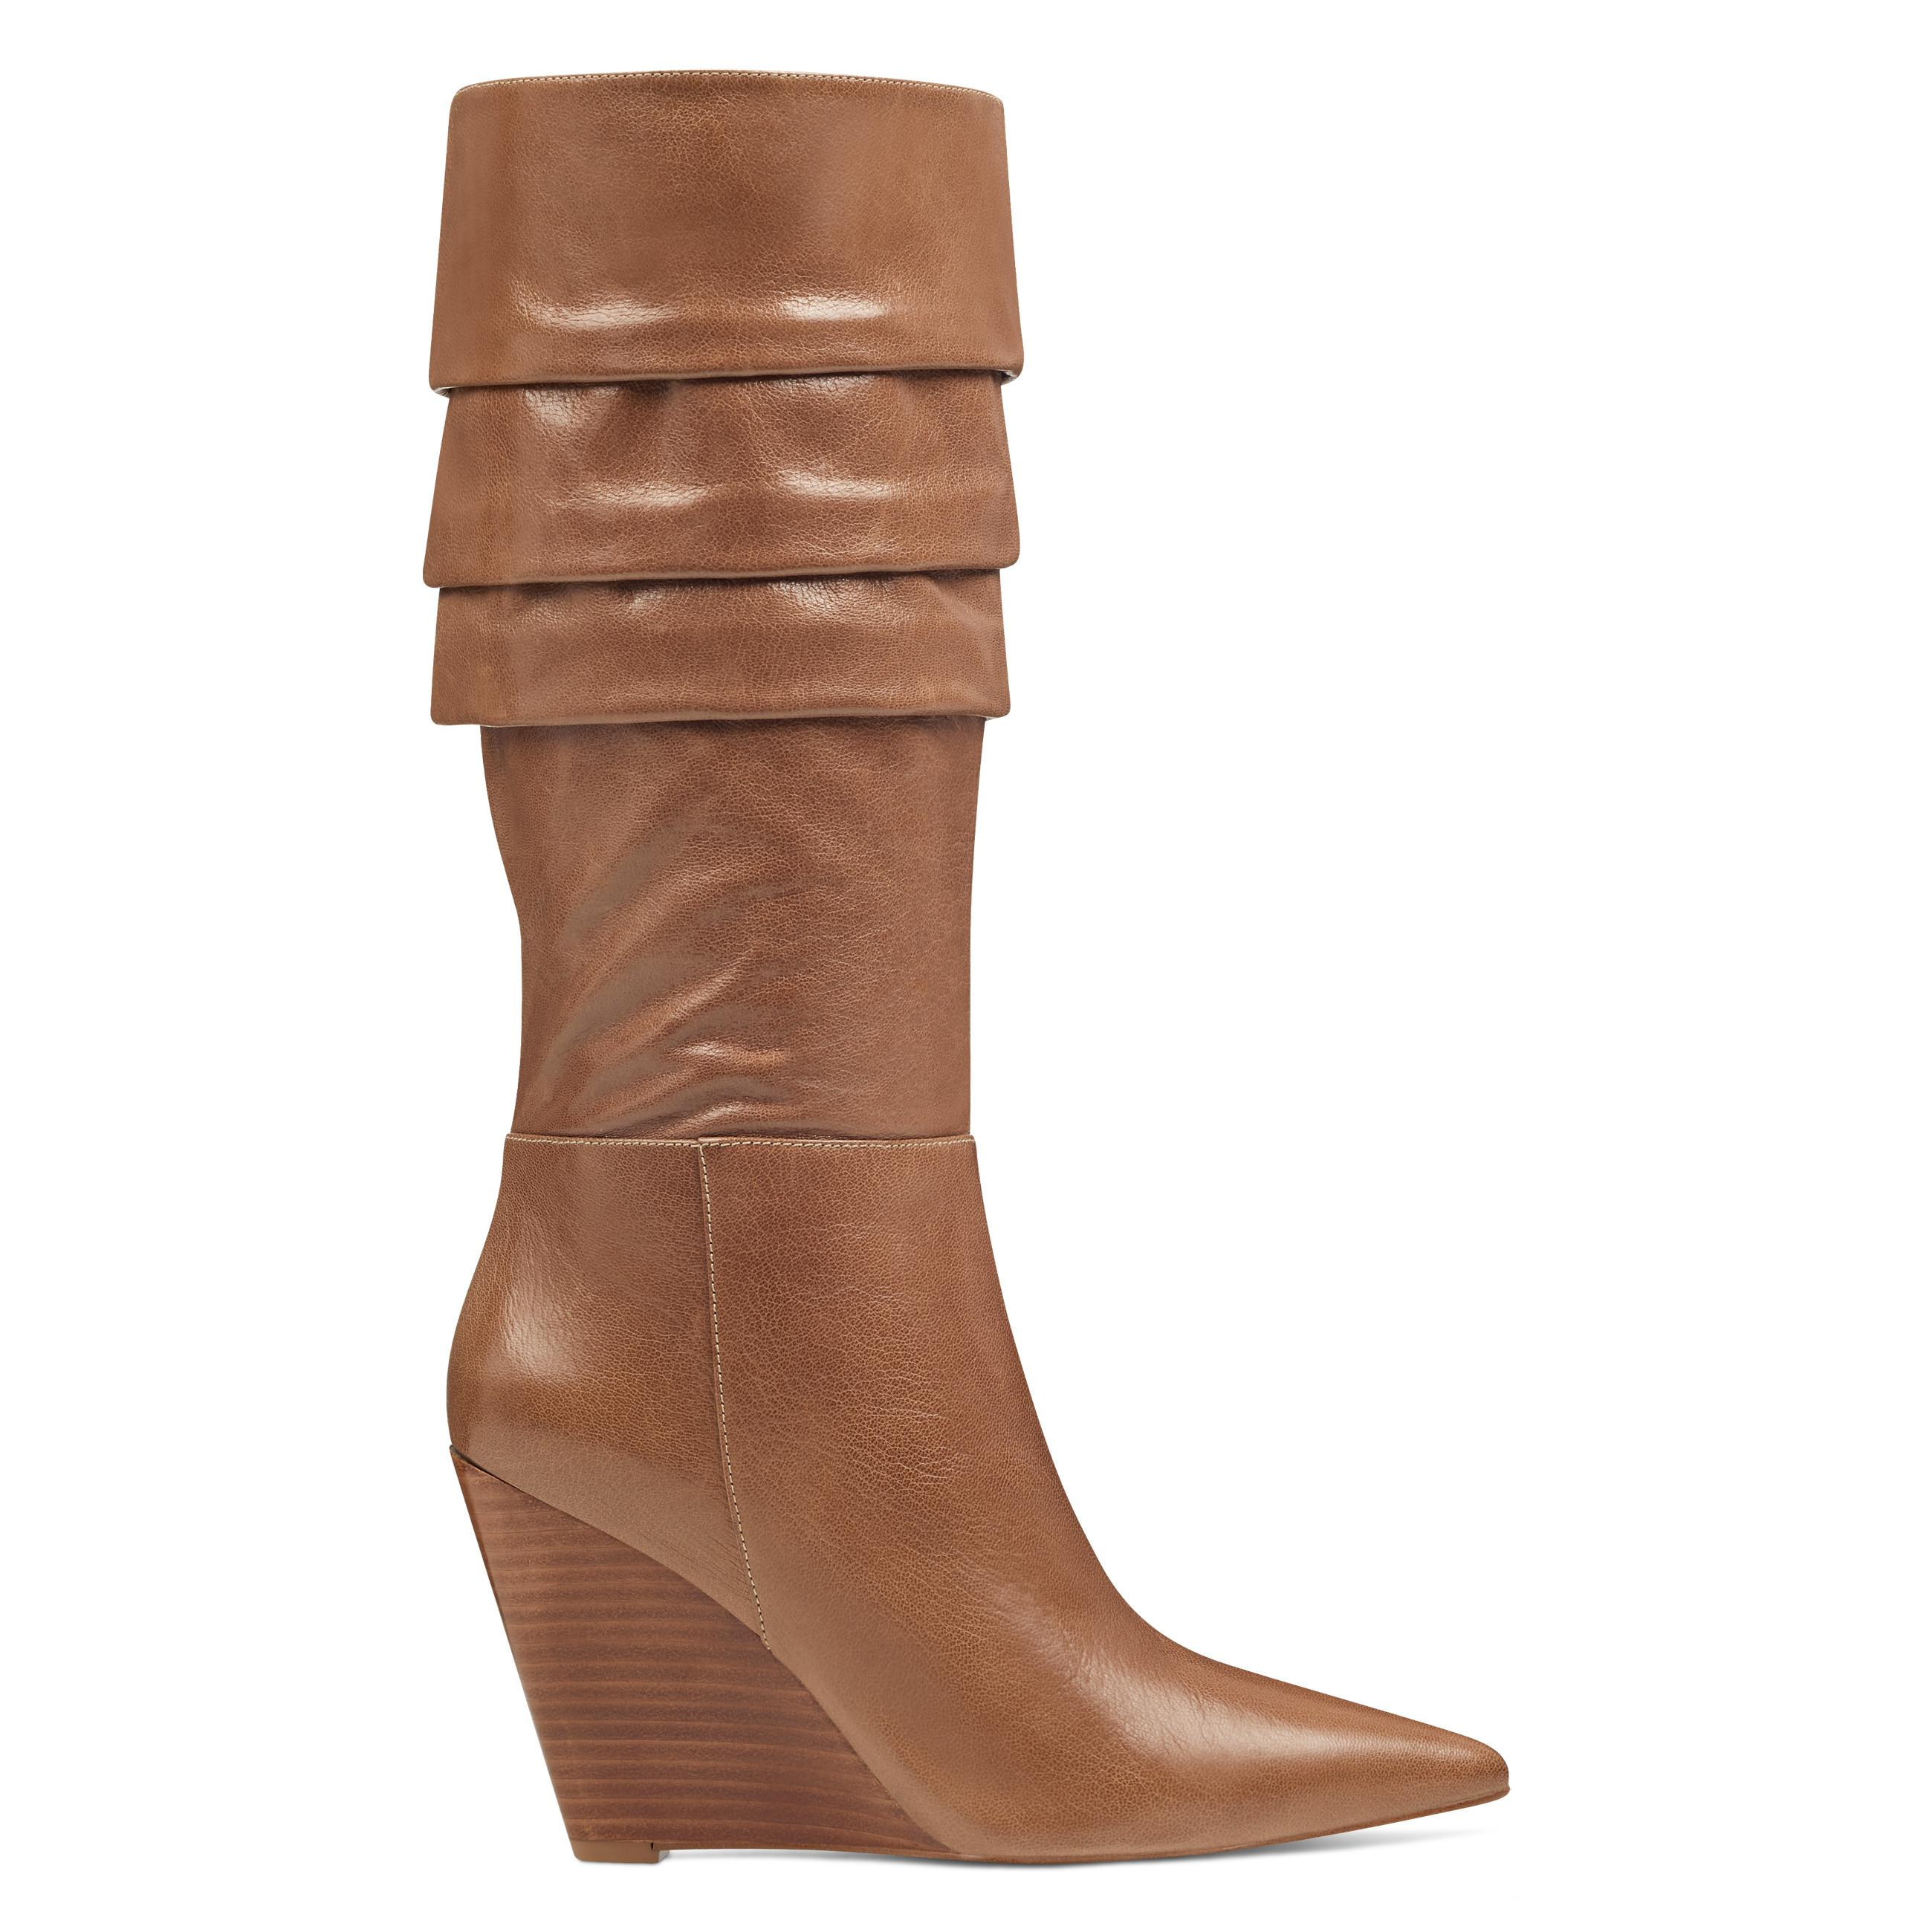 3dbe160a516 Lyst - Nine West Vernese Scrunched Wedge Boots in Brown - Save 44%